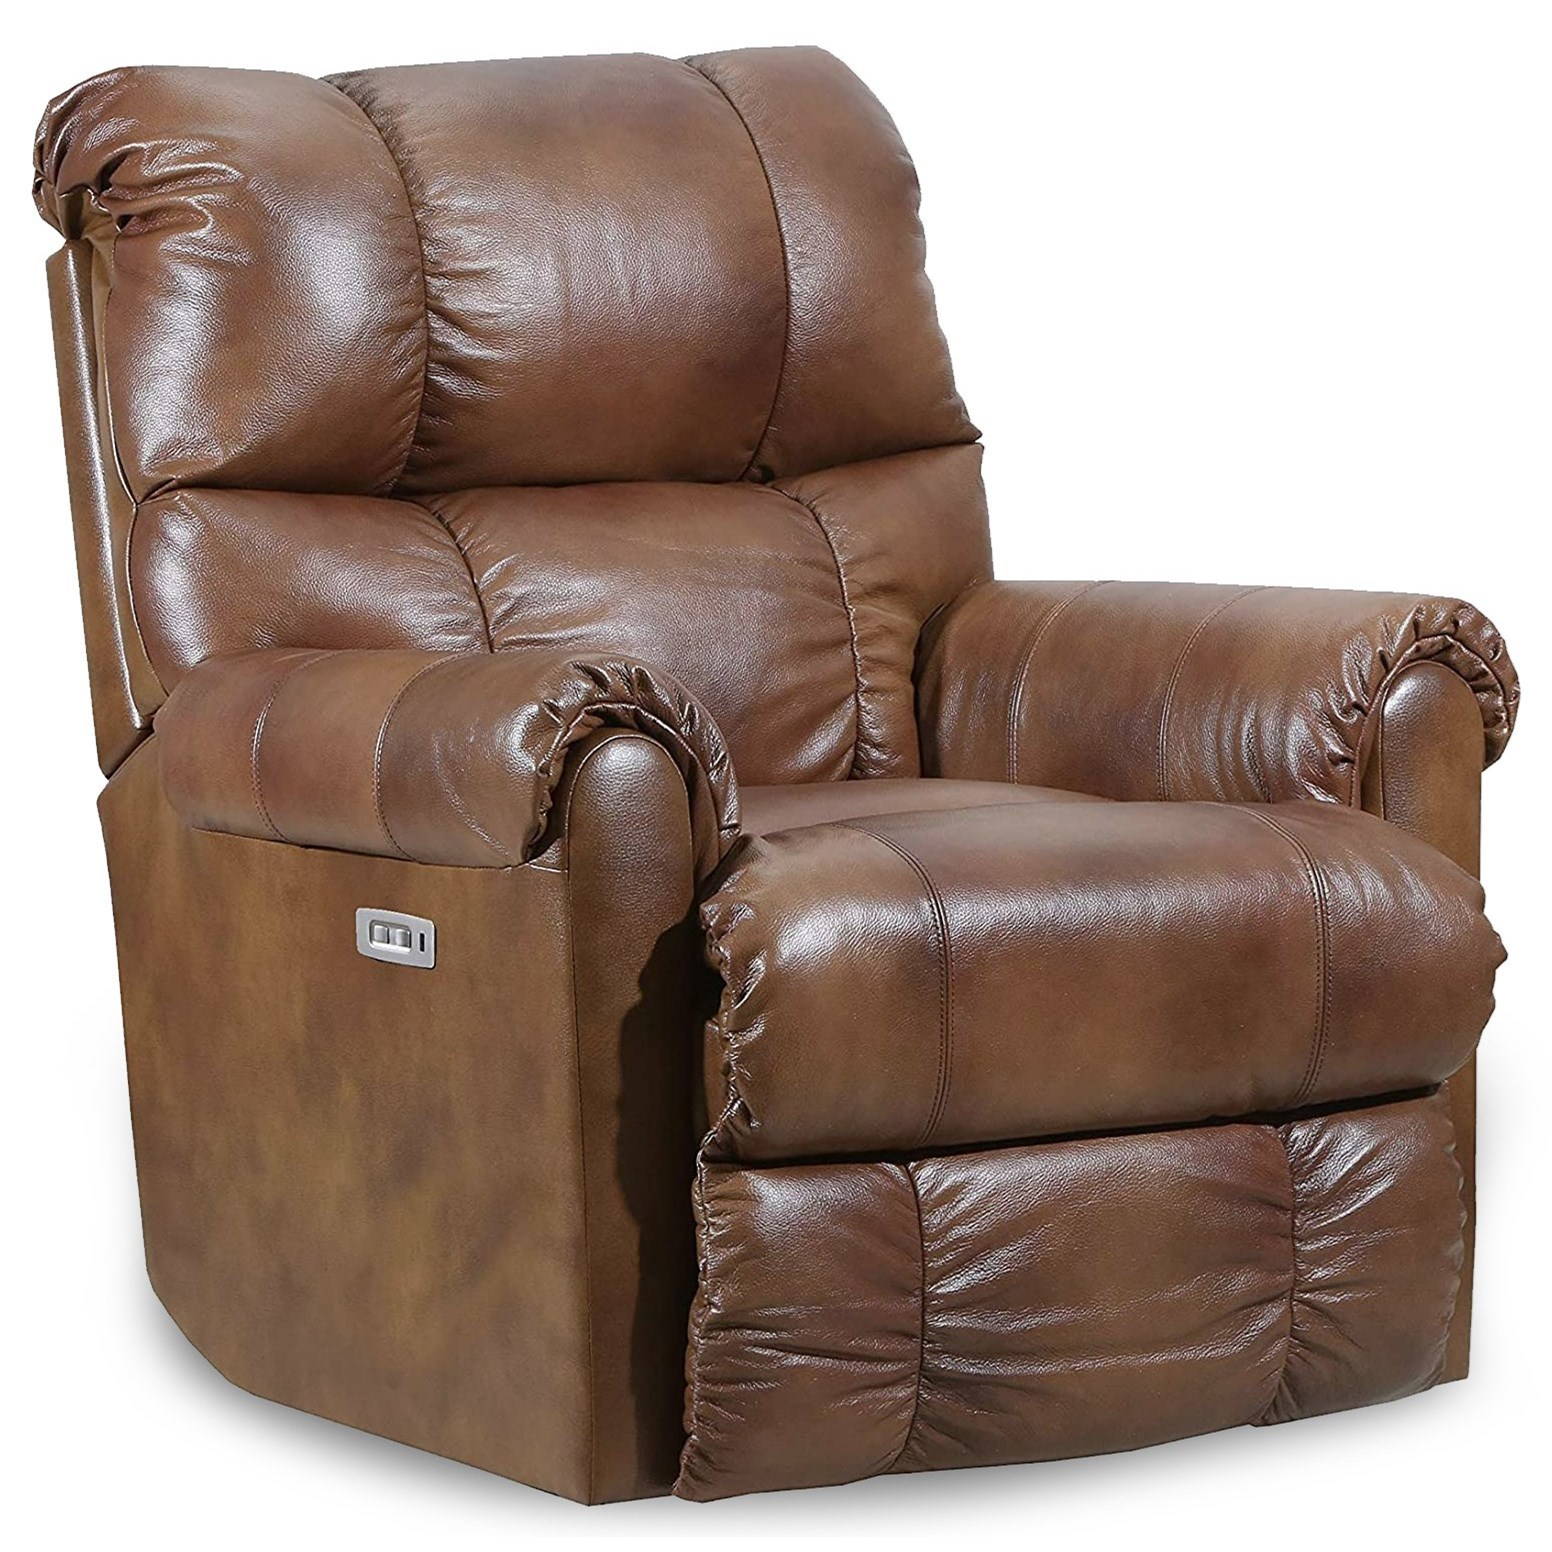 Avenger Power Glider Recliner with Heat and Massage by Lane at Story & Lee Furniture